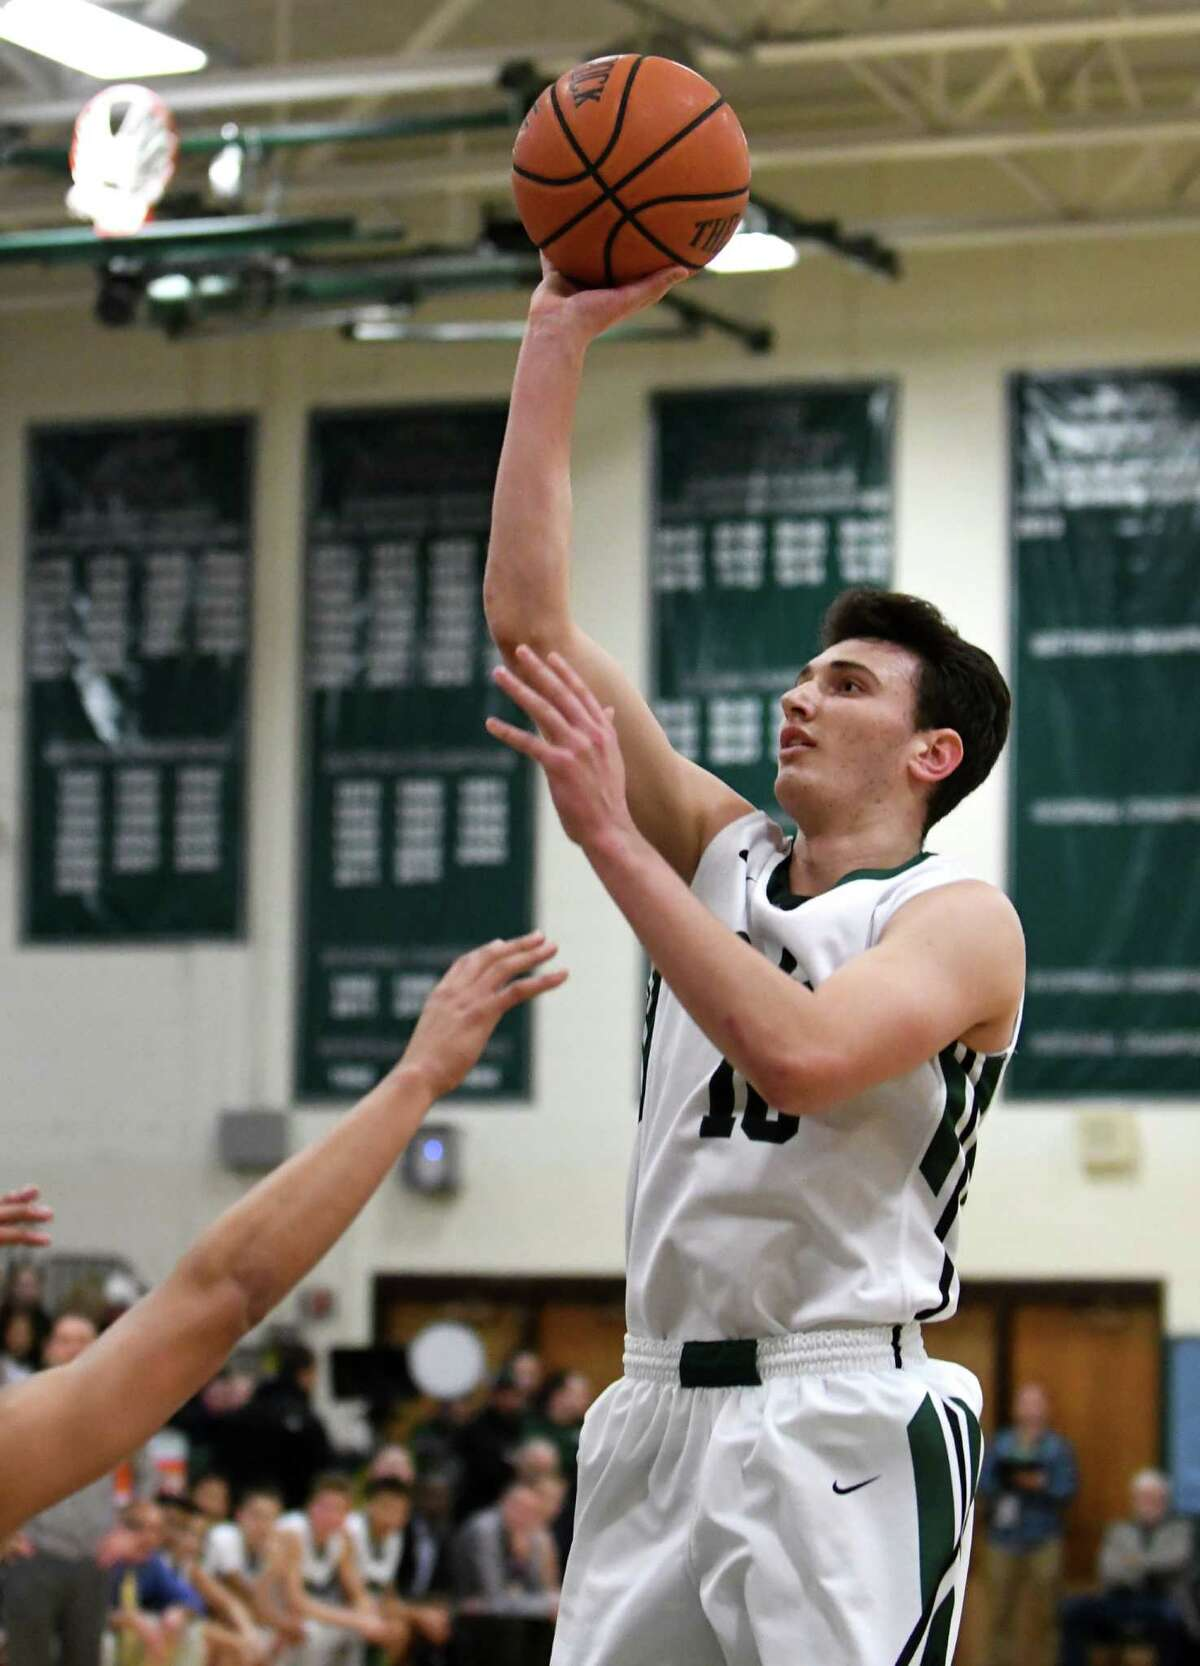 Shen's Luke Hicks puts up a shot during their boy's high school basketball game against Saratoga on Wednesday Dec. 21, 2016 in Clifton Park, N.Y. (Michael P. Farrell/Times Union)